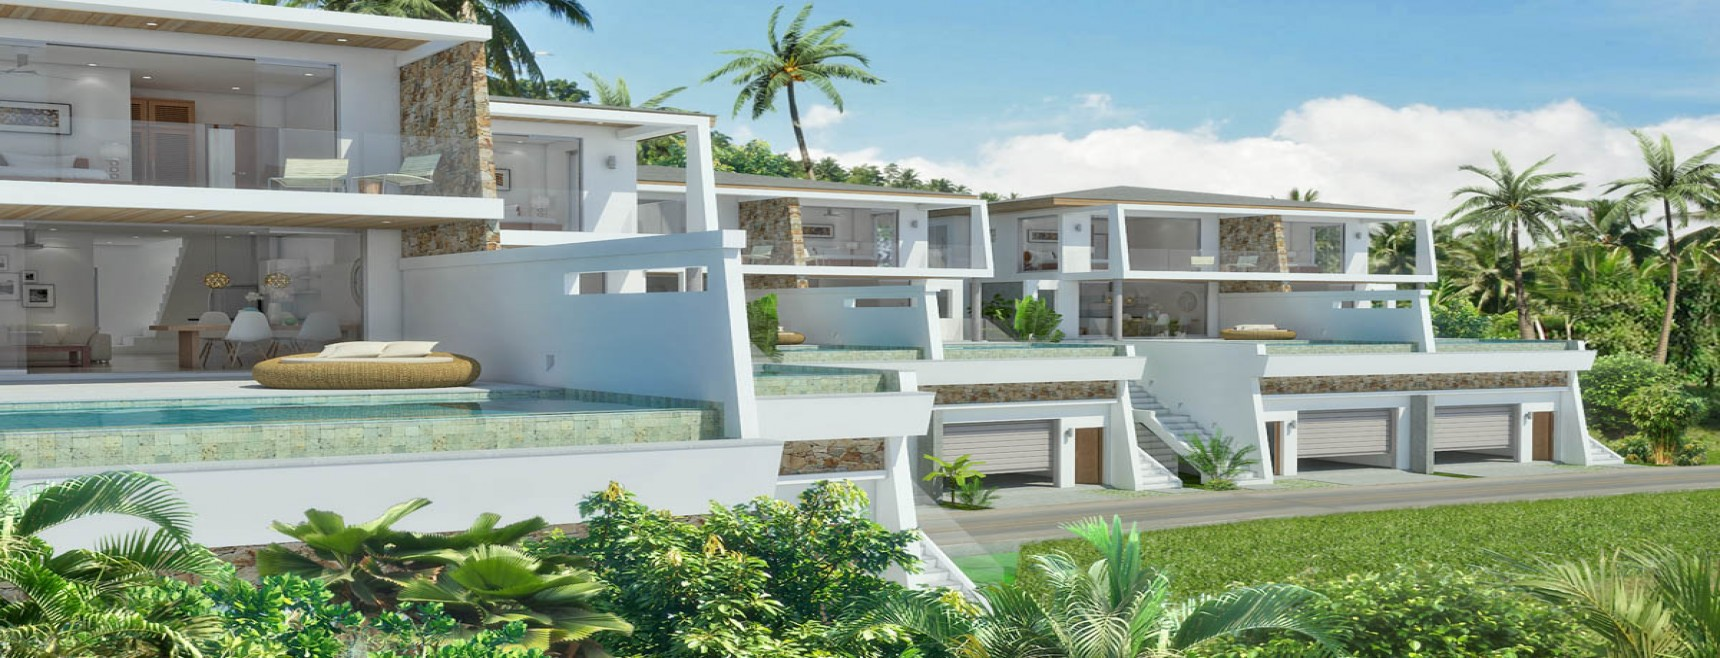 4 Bedrooms, Villa, Residential Sales, 4 Bathrooms, Listing ID 1255, Plai Laem, North East, Koh Samui,